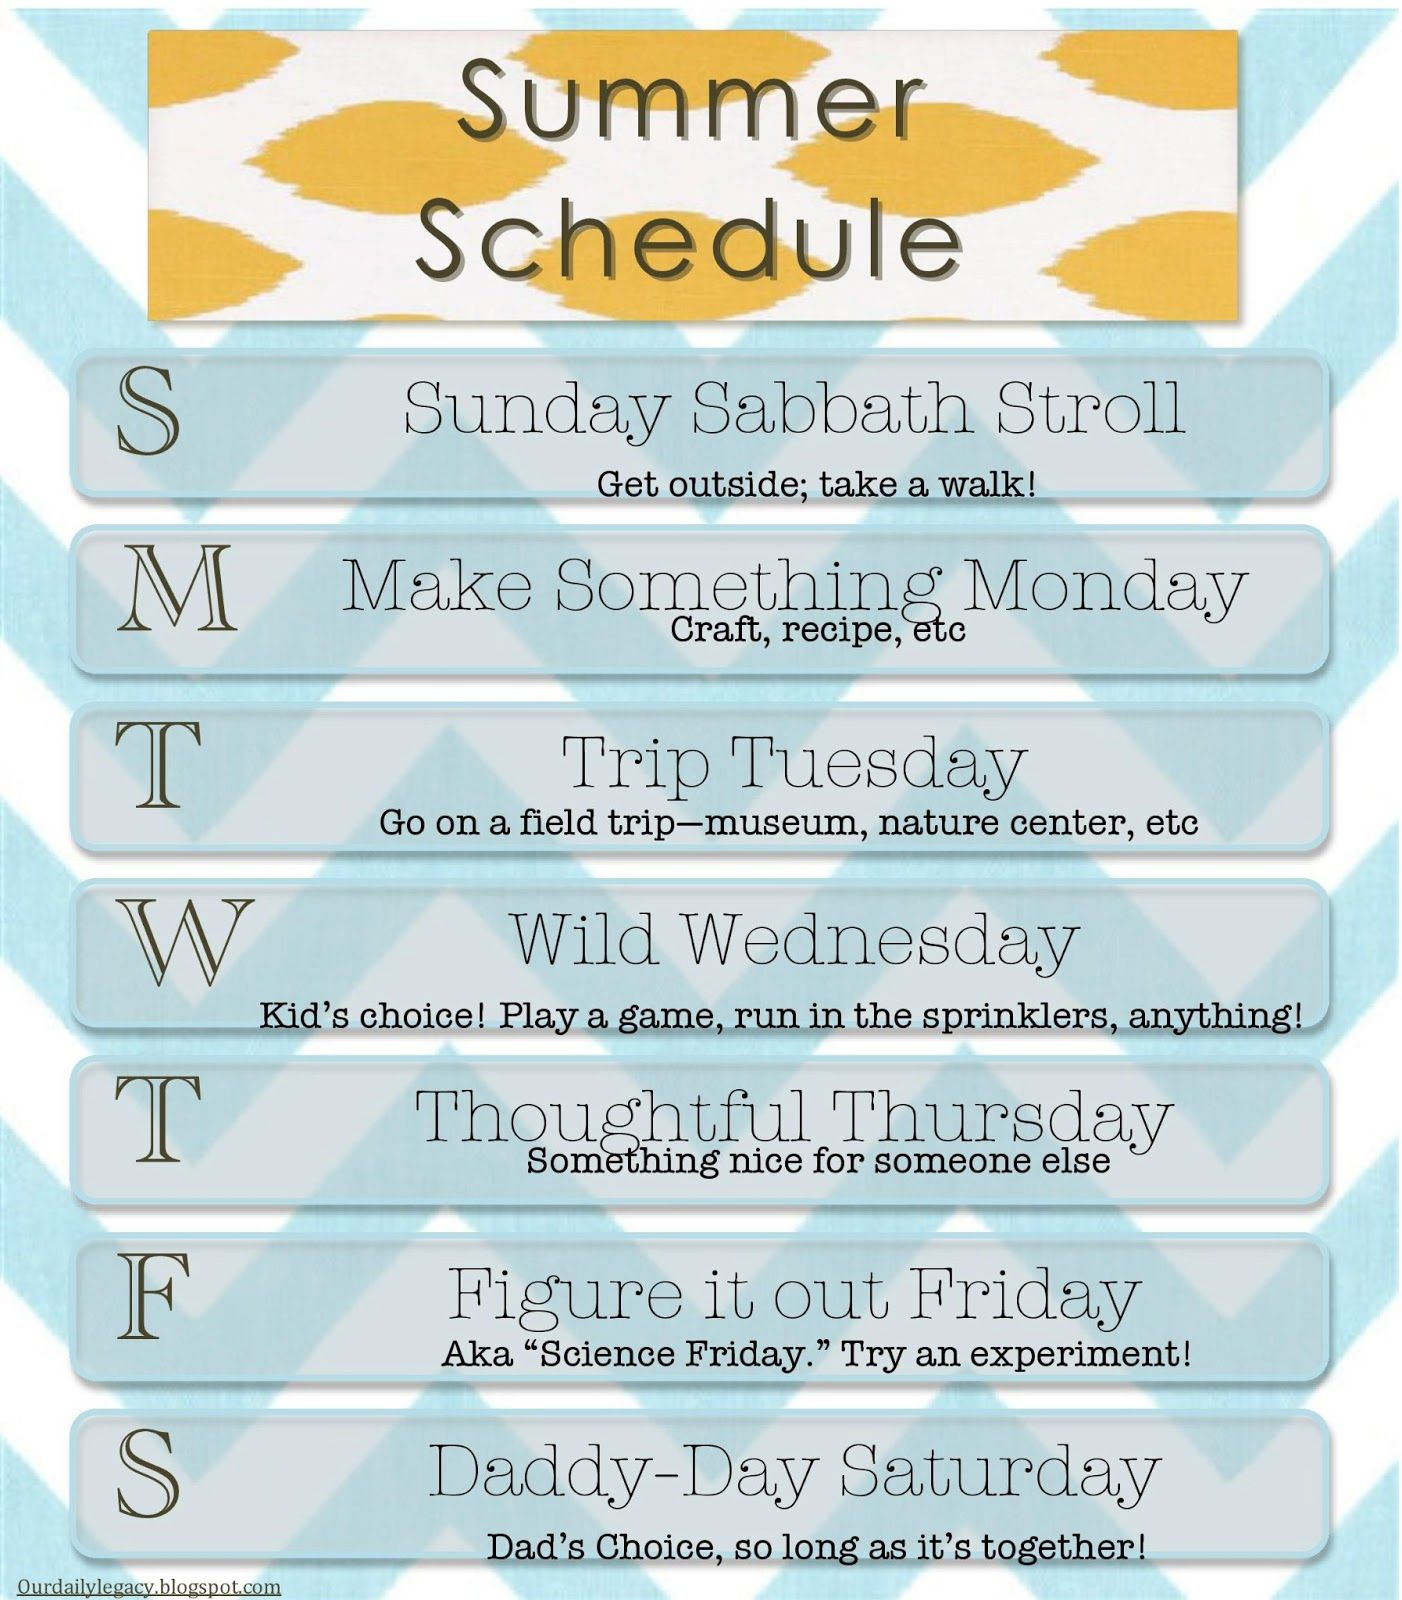 Our Daily Legacy: Summer Schedule #summerschedule